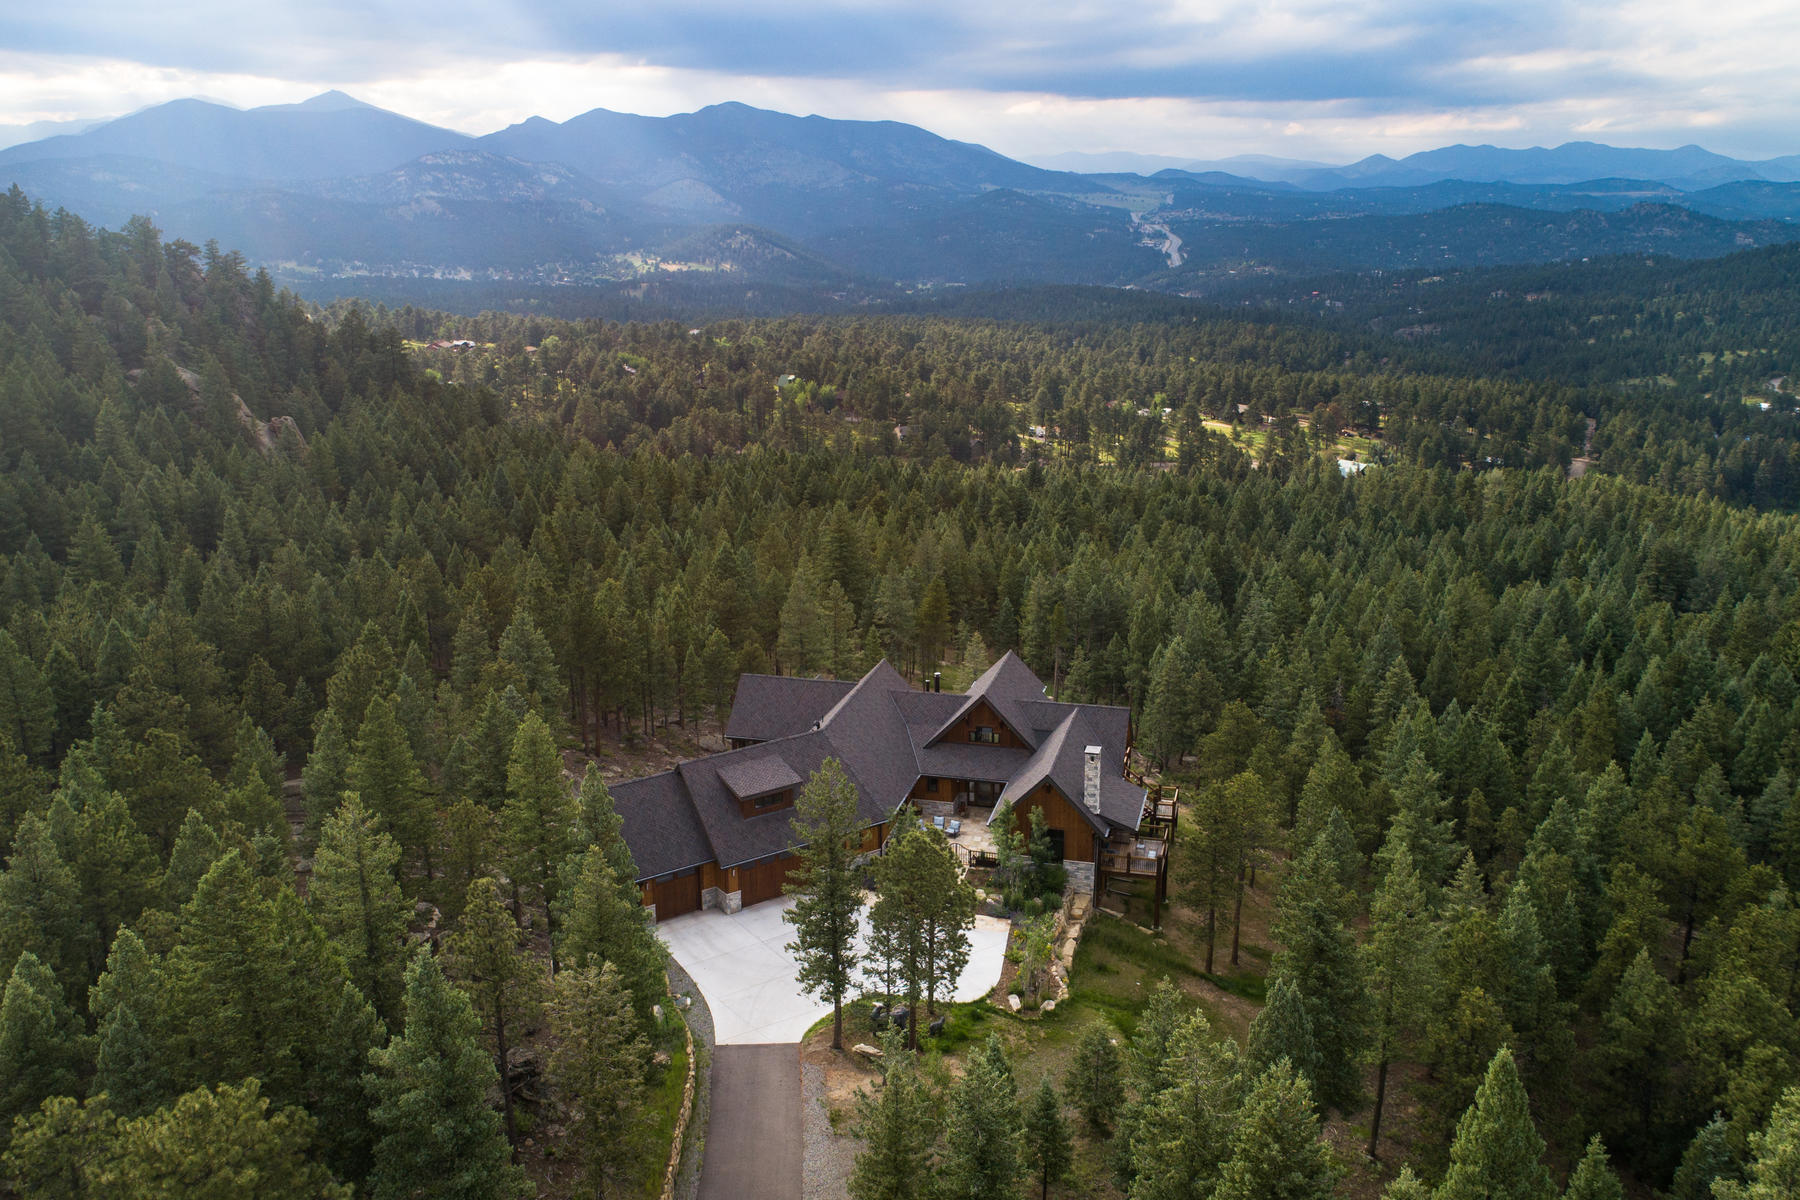 Single Family Home for Active at Classic Sophistication with Mountain Modern Luxury 6009 Flat Creek Drive Evergreen, Colorado 80439 United States